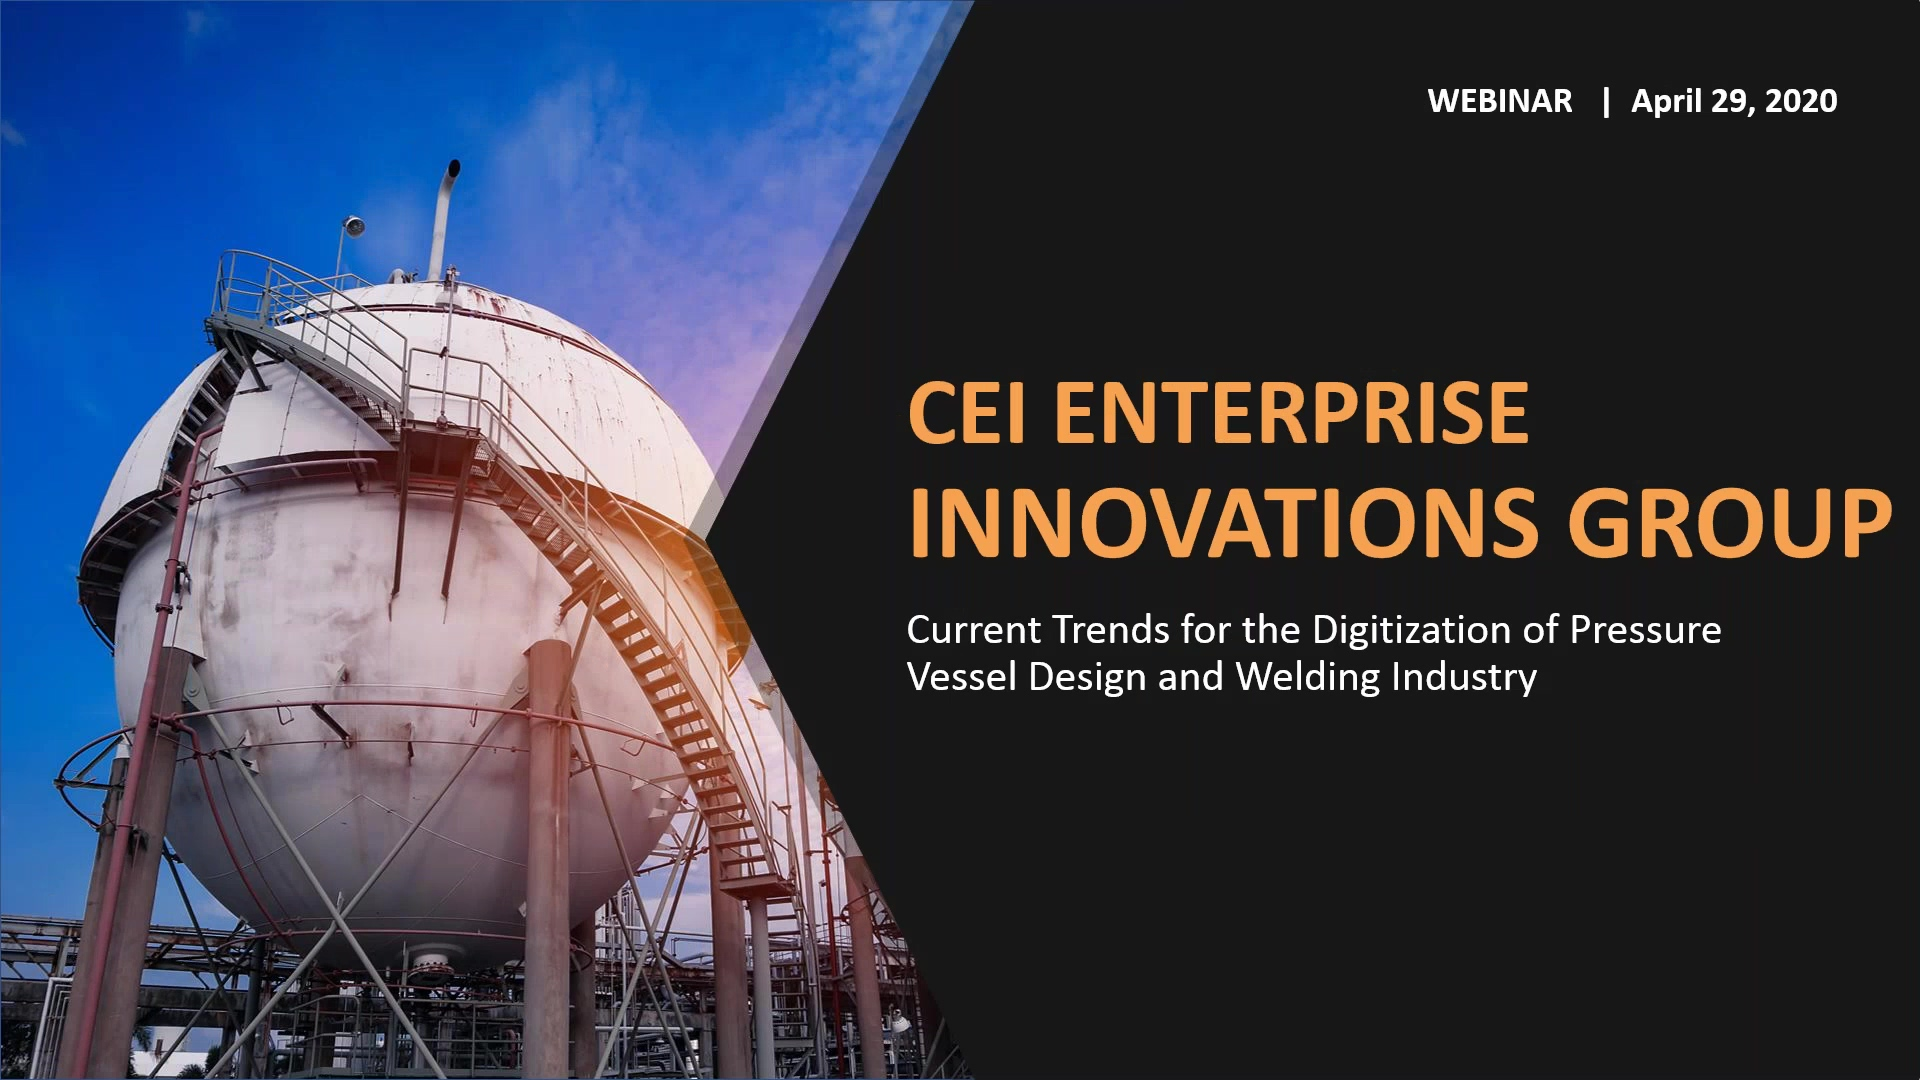 Helping the Pressure Vessel Design and Welding Industry Power Through Recent Events